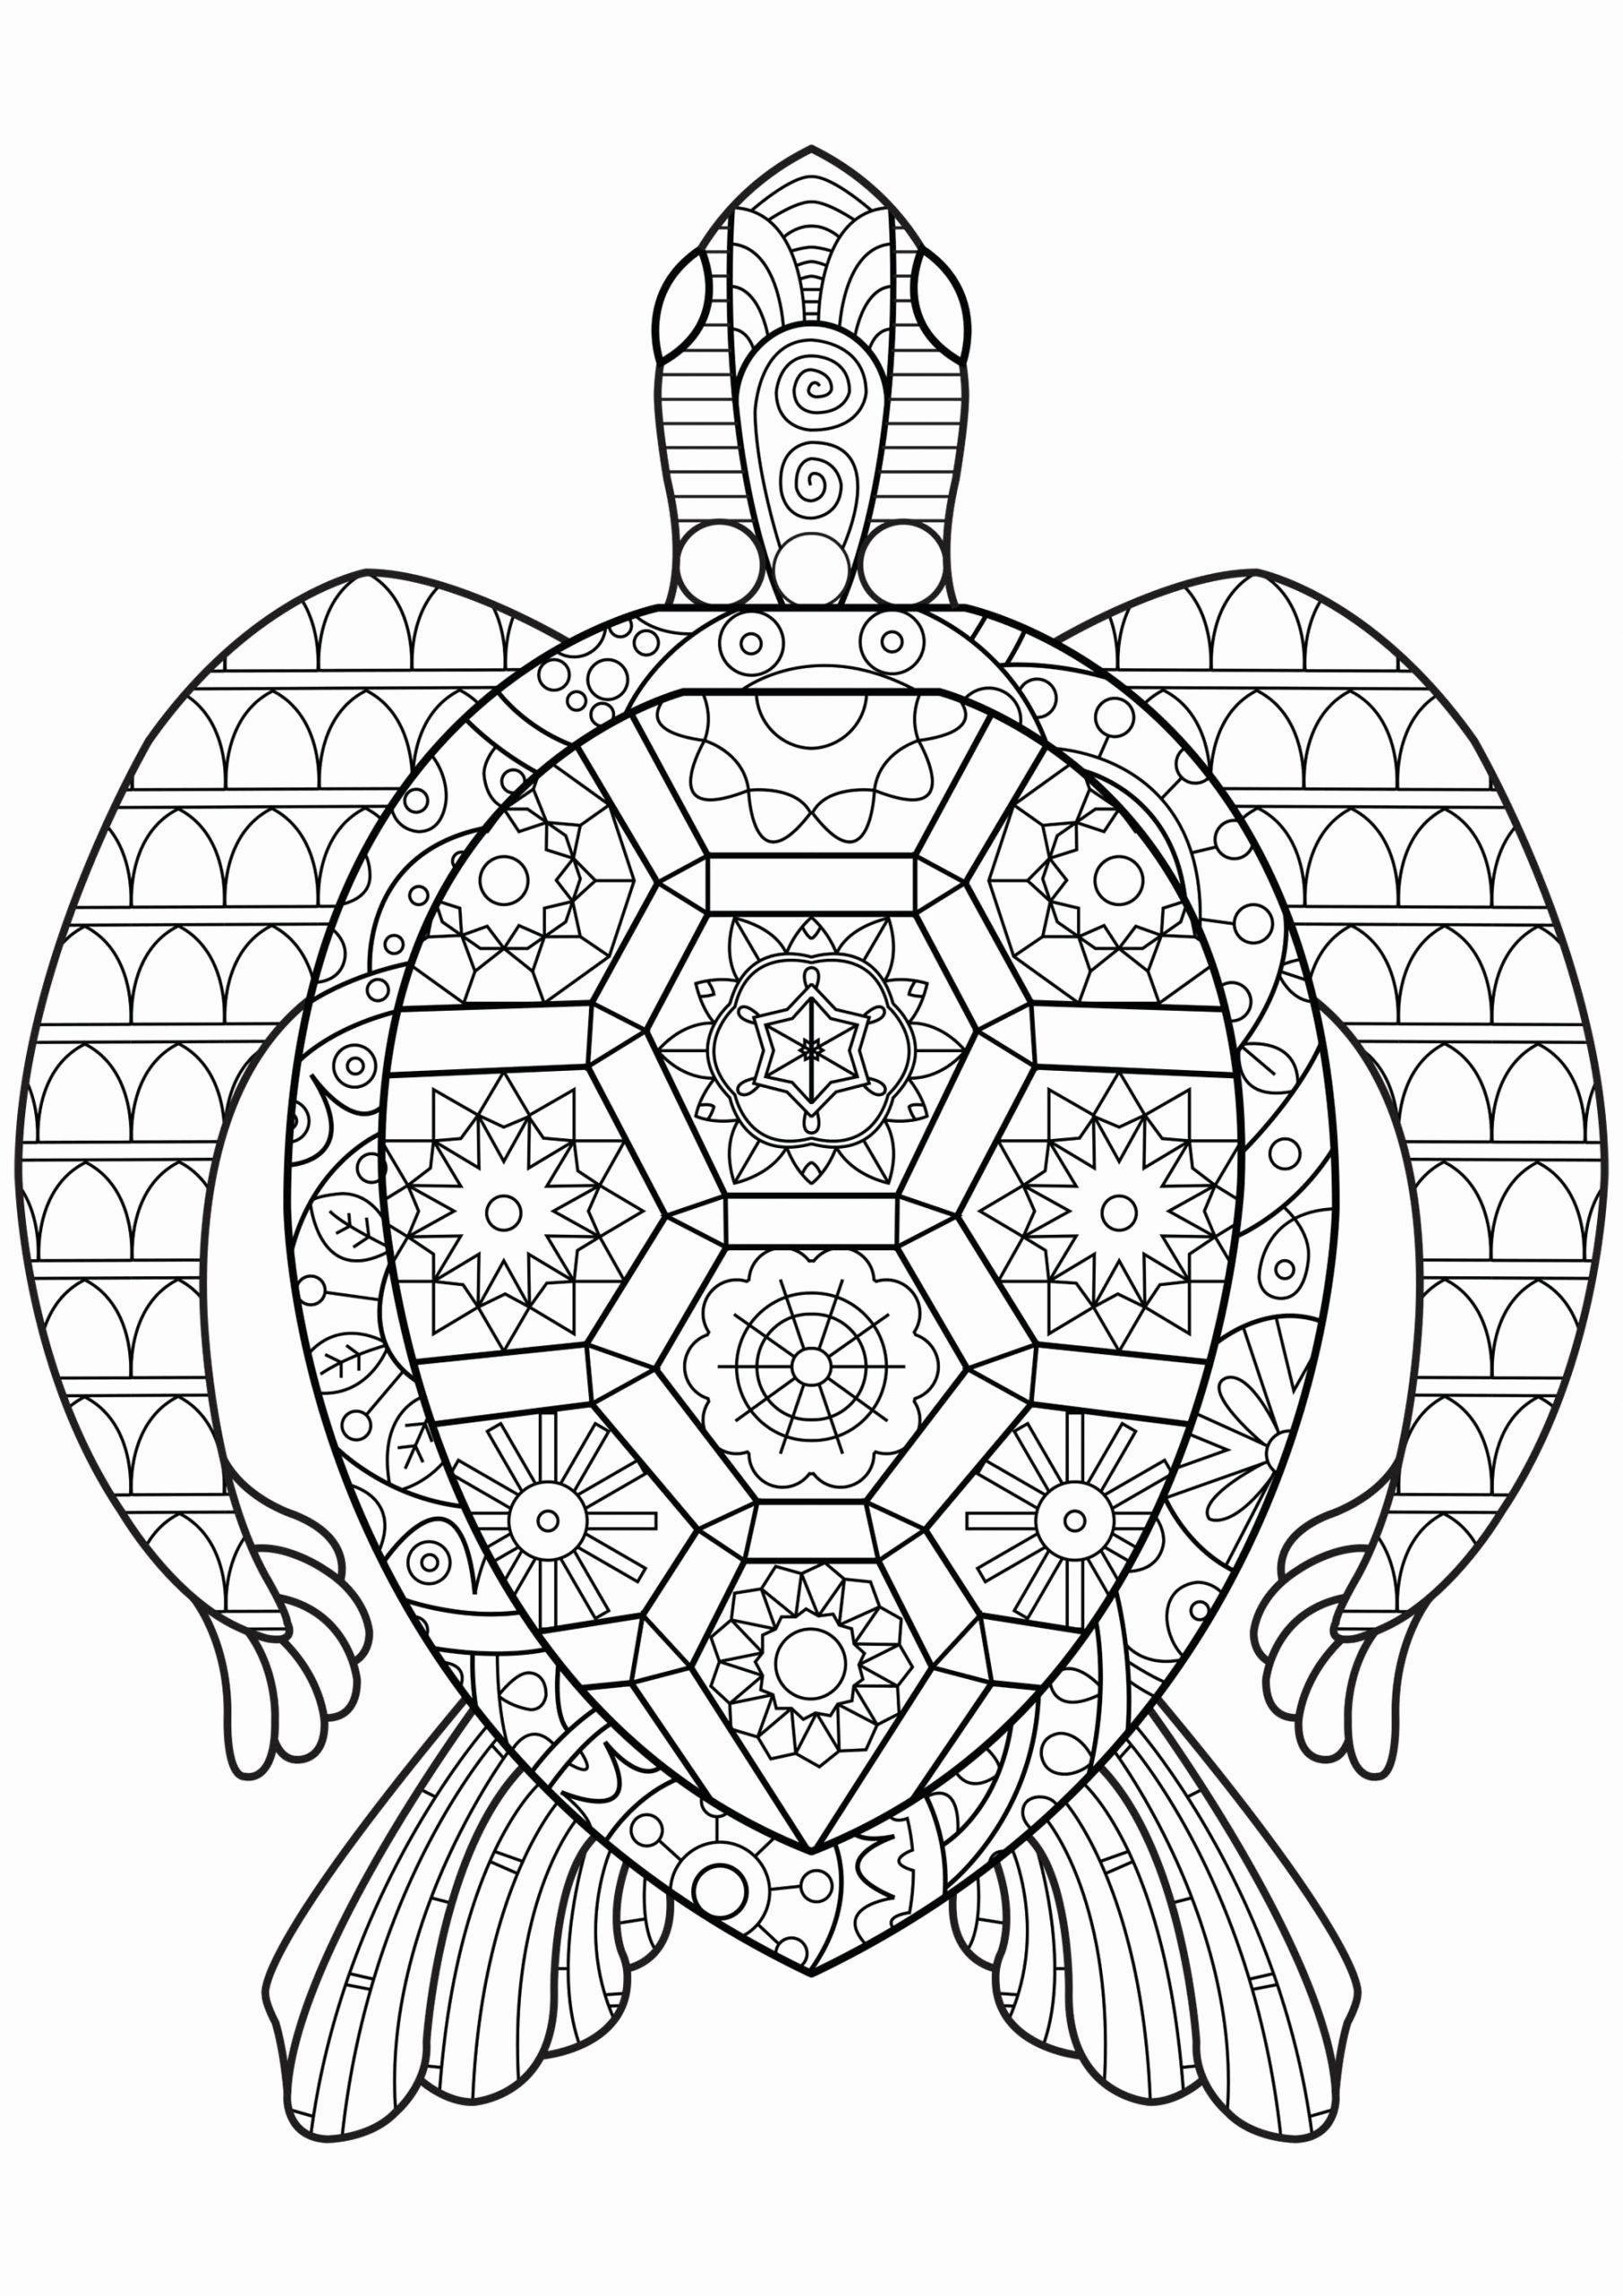 Pin By Barbara Gilbert On Ideas For Grand Kids Turtle Coloring Pages Lion Coloring Pages Animal Coloring Pages